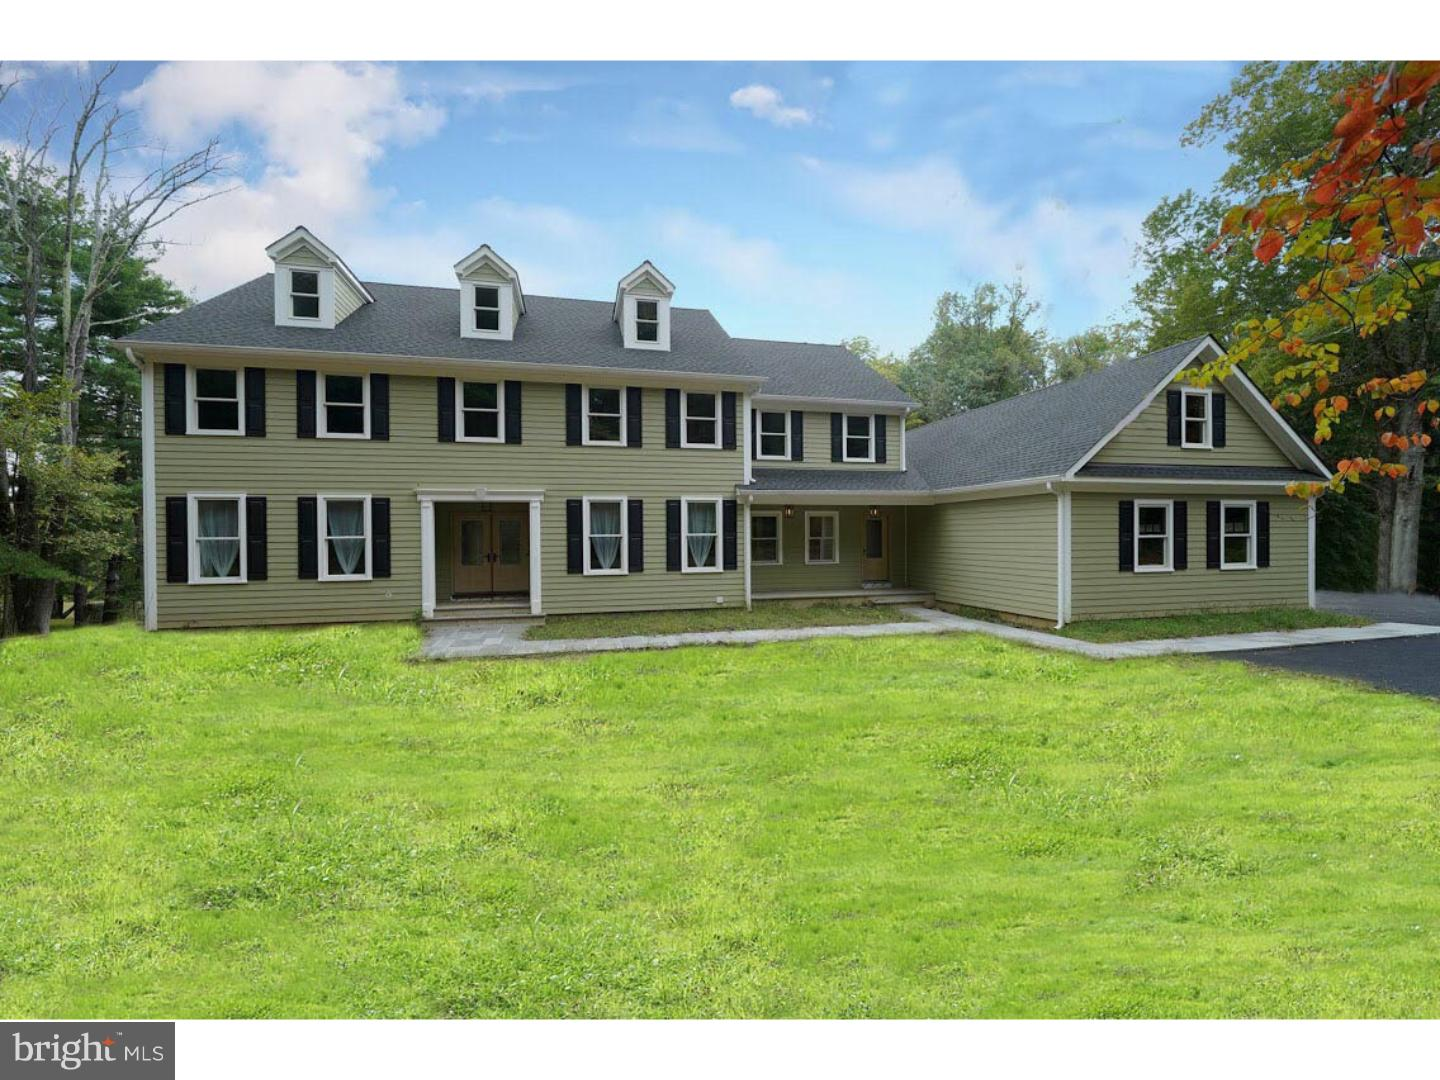 Property for Sale at 99 HEATHER Lane Princeton, New Jersey 08540 United States